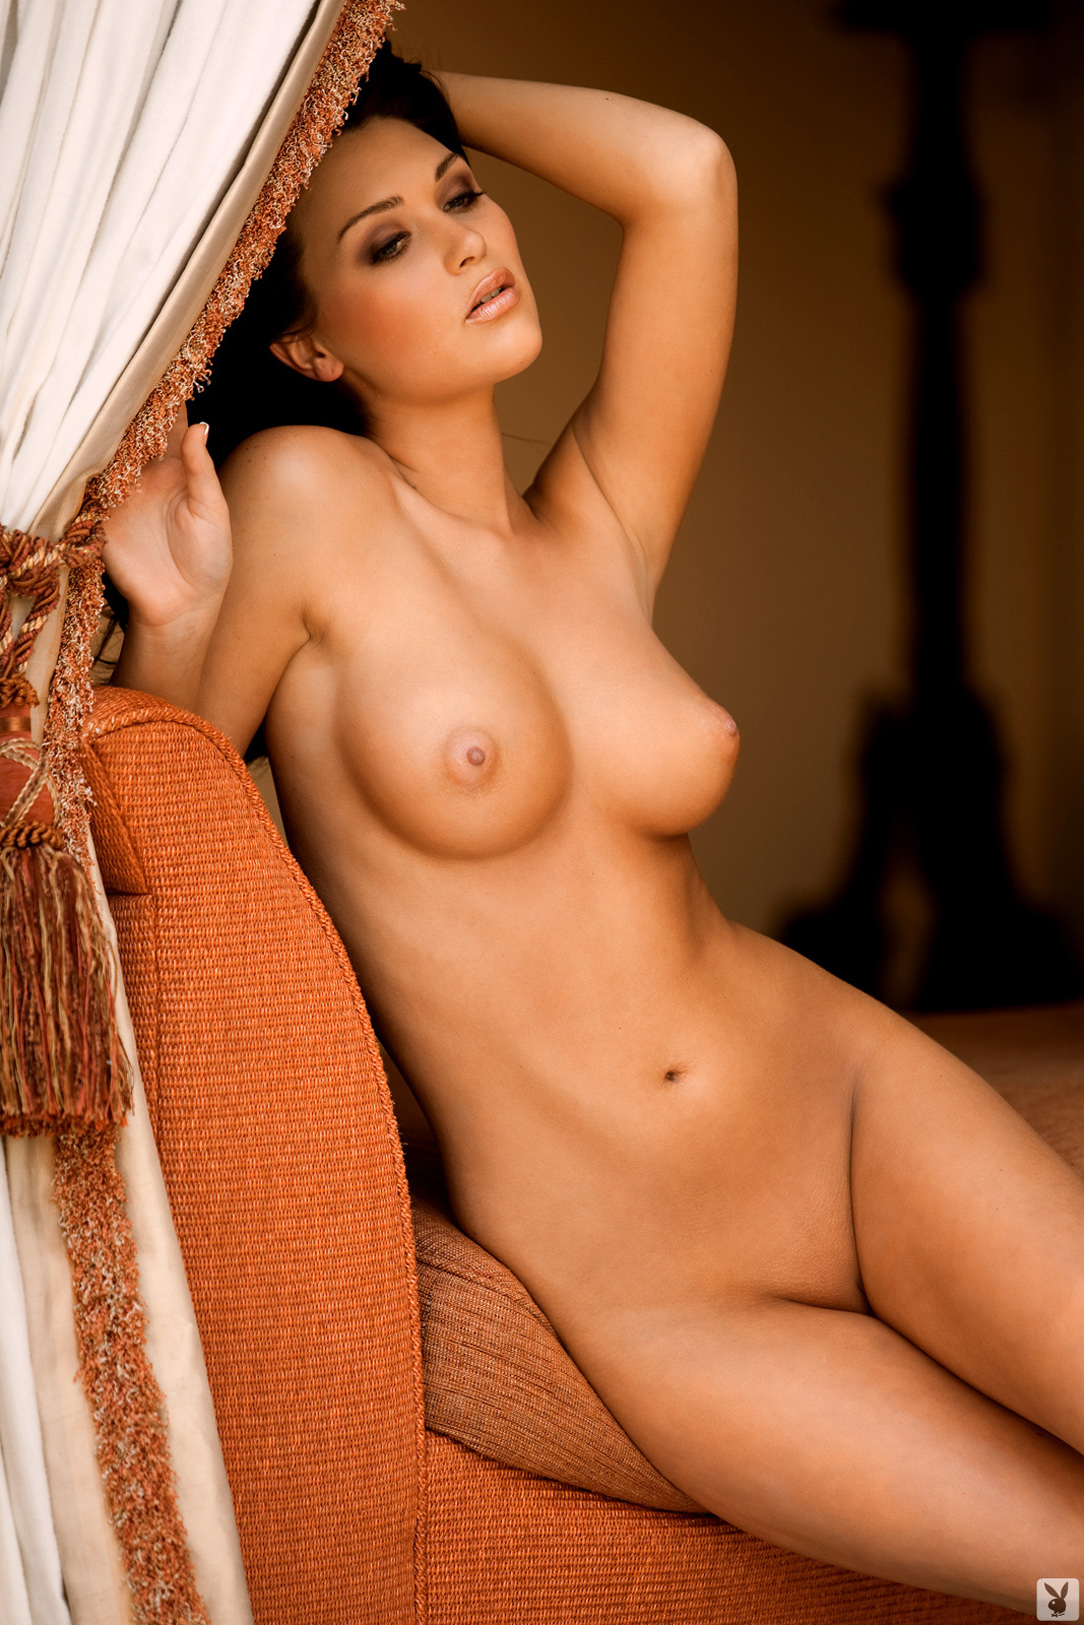 Naked hot chicks xxx on twitter